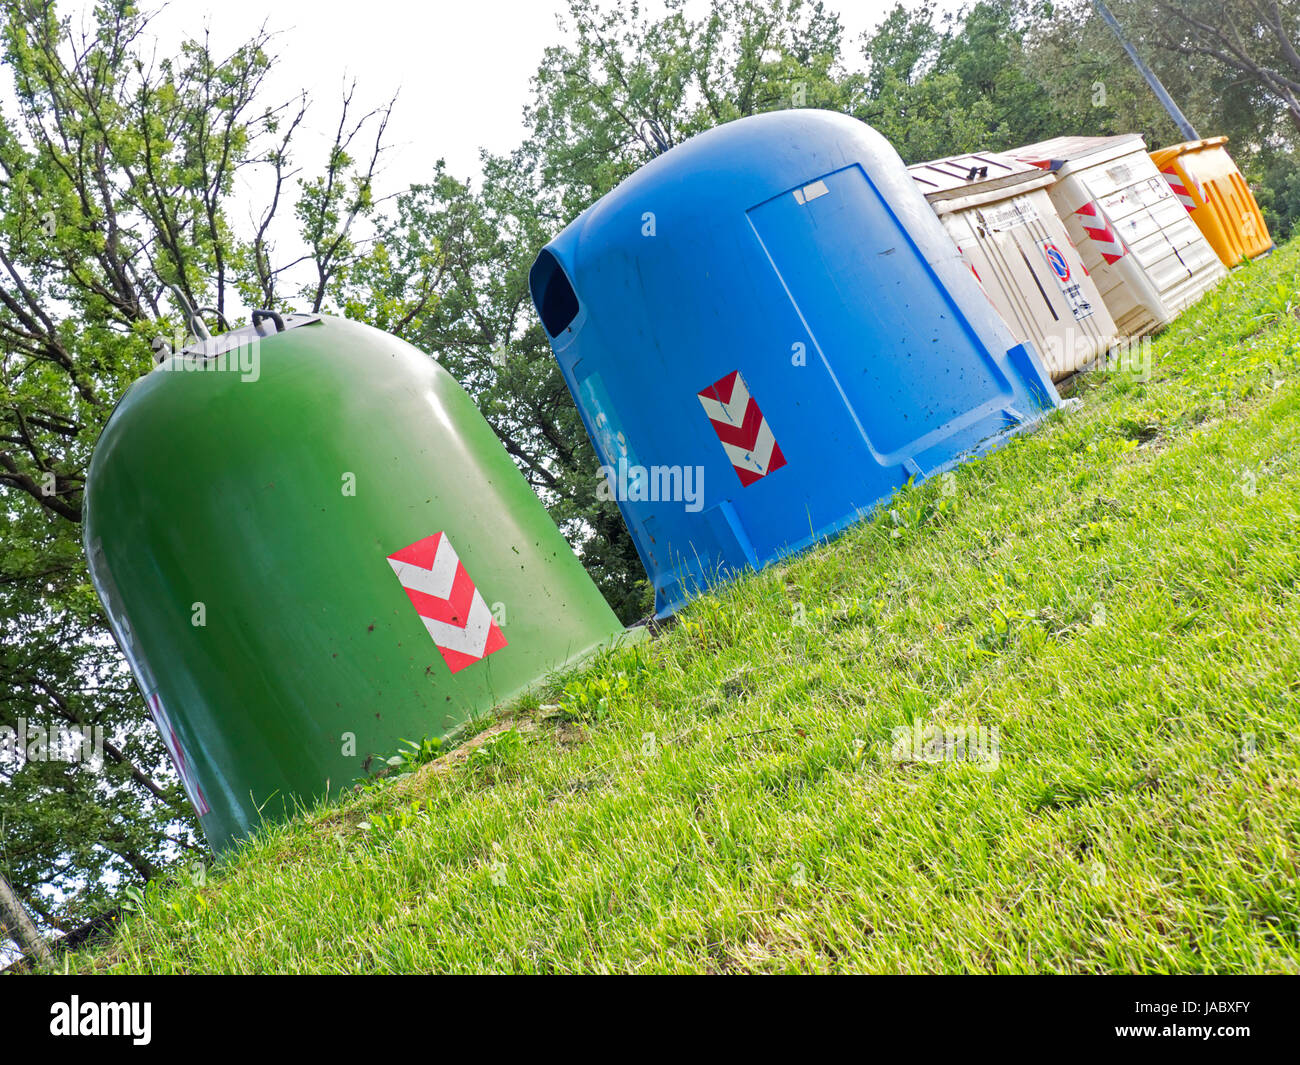 differentiated waste collection on the  green lawn - Stock Image